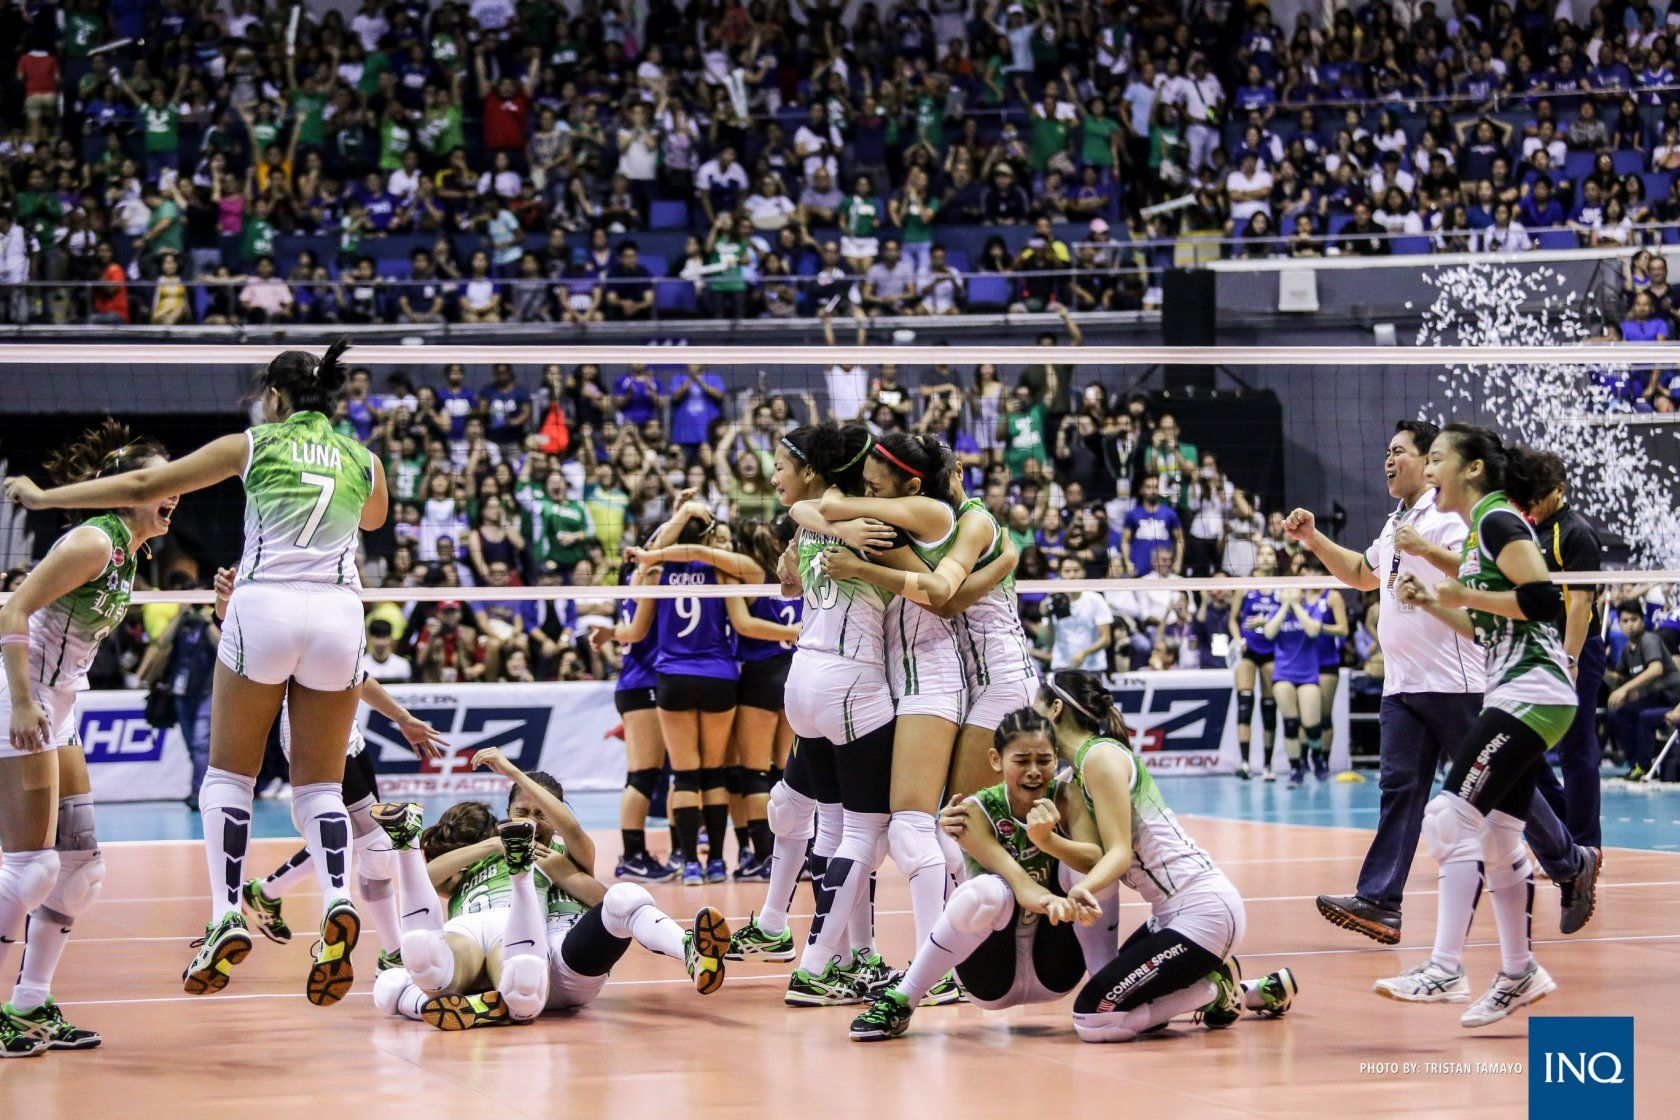 Uaap Volleyball Season 79 Rocks Volleyball Sports Athlete